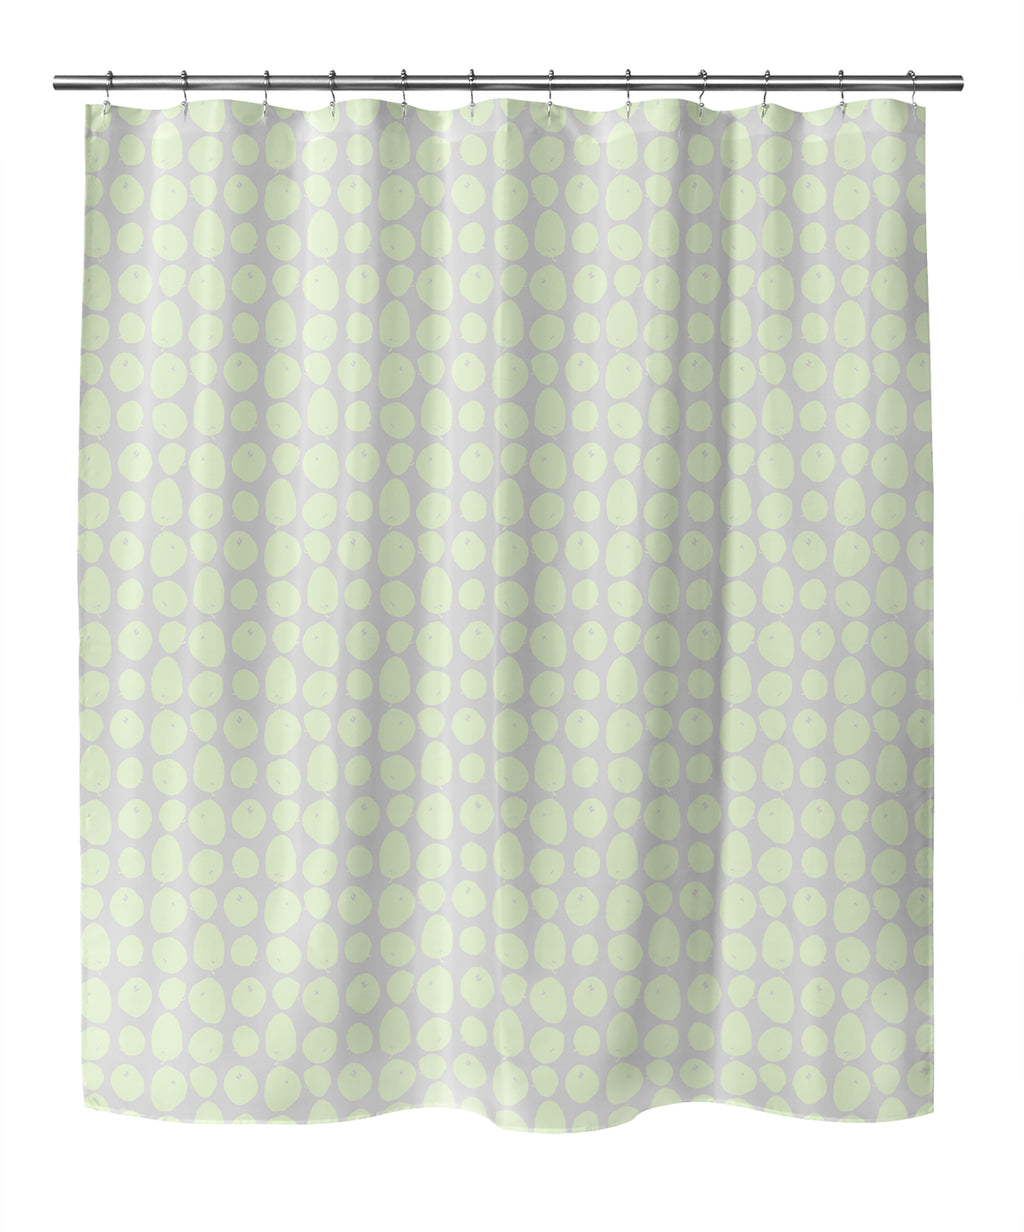 APPLES GREEN Shower Curtain By Hope Bainbridge